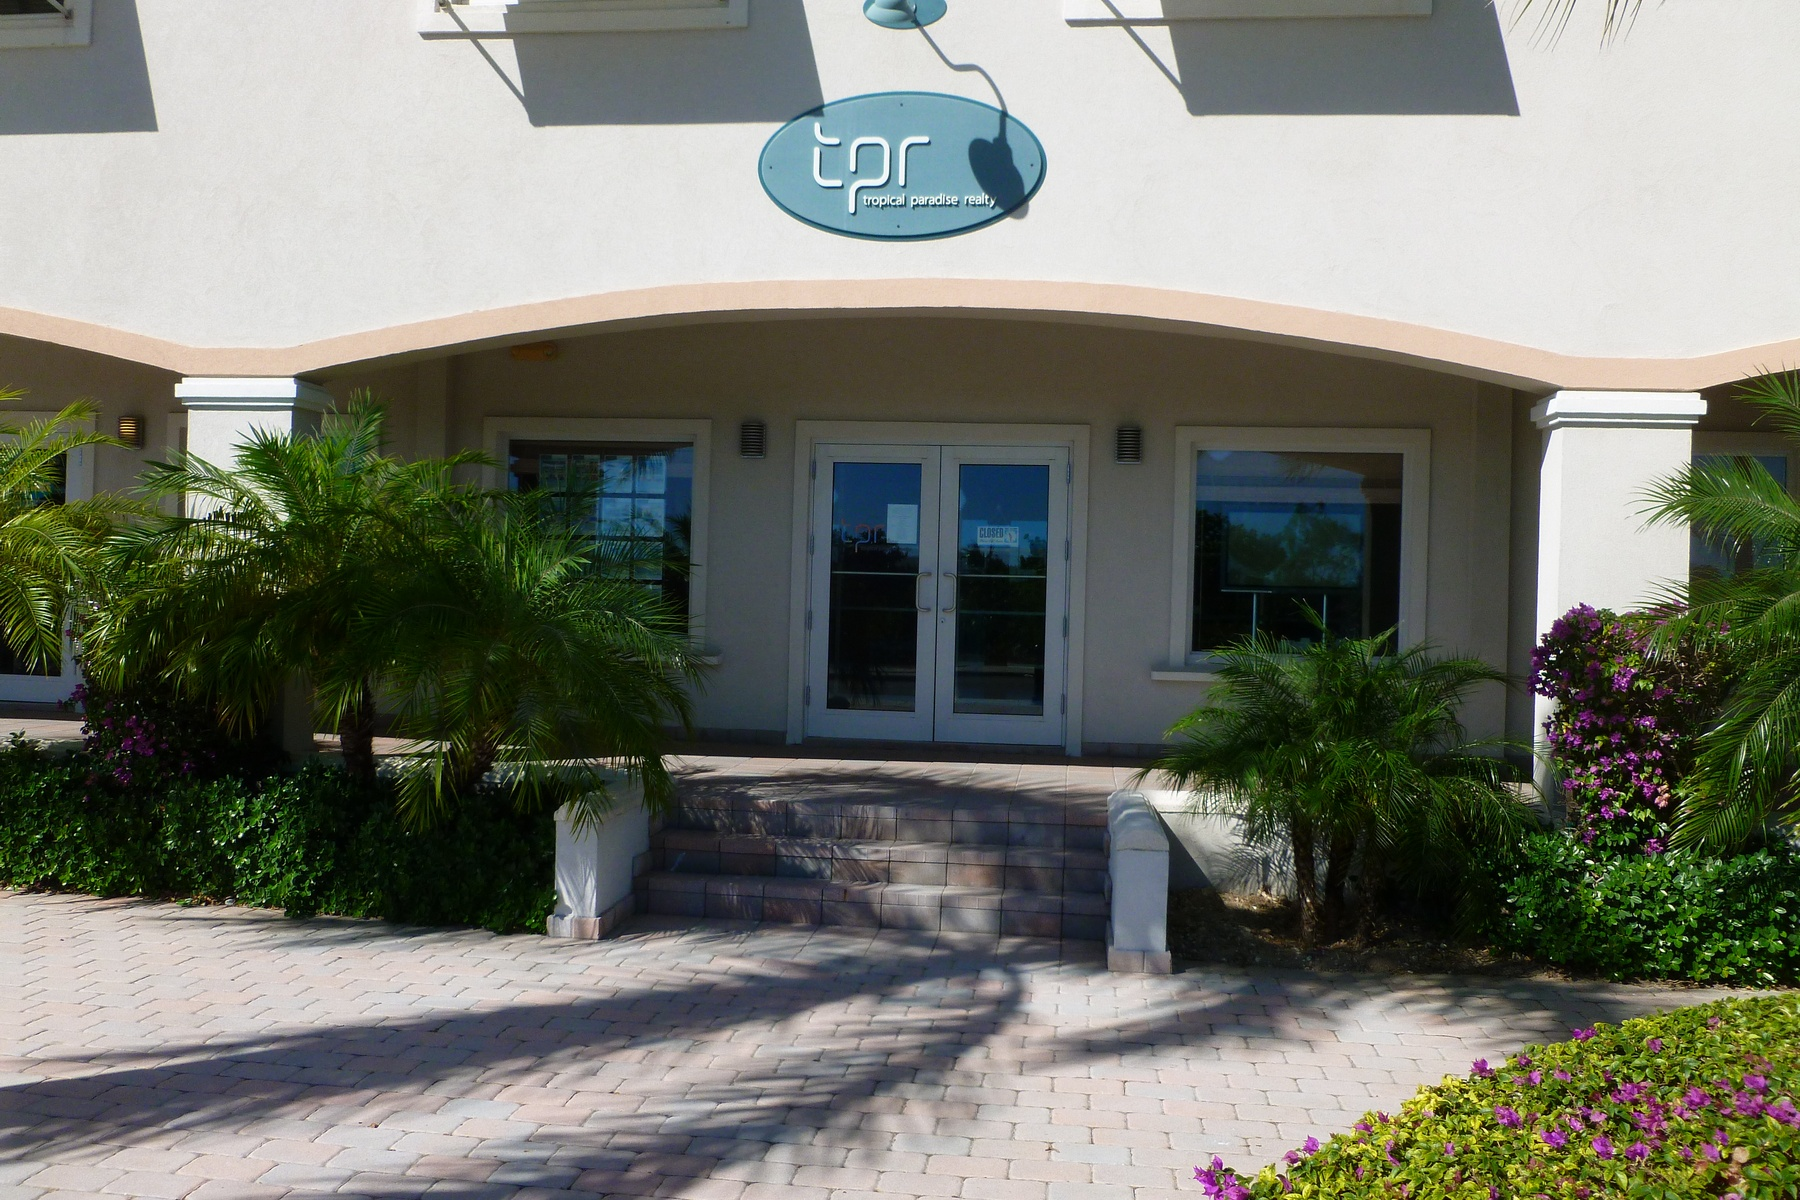 Additional photo for property listing at Ocean Club Plaza 106  Grace Bay, Providenciales TCI BWI Islas Turcas Y Caicos